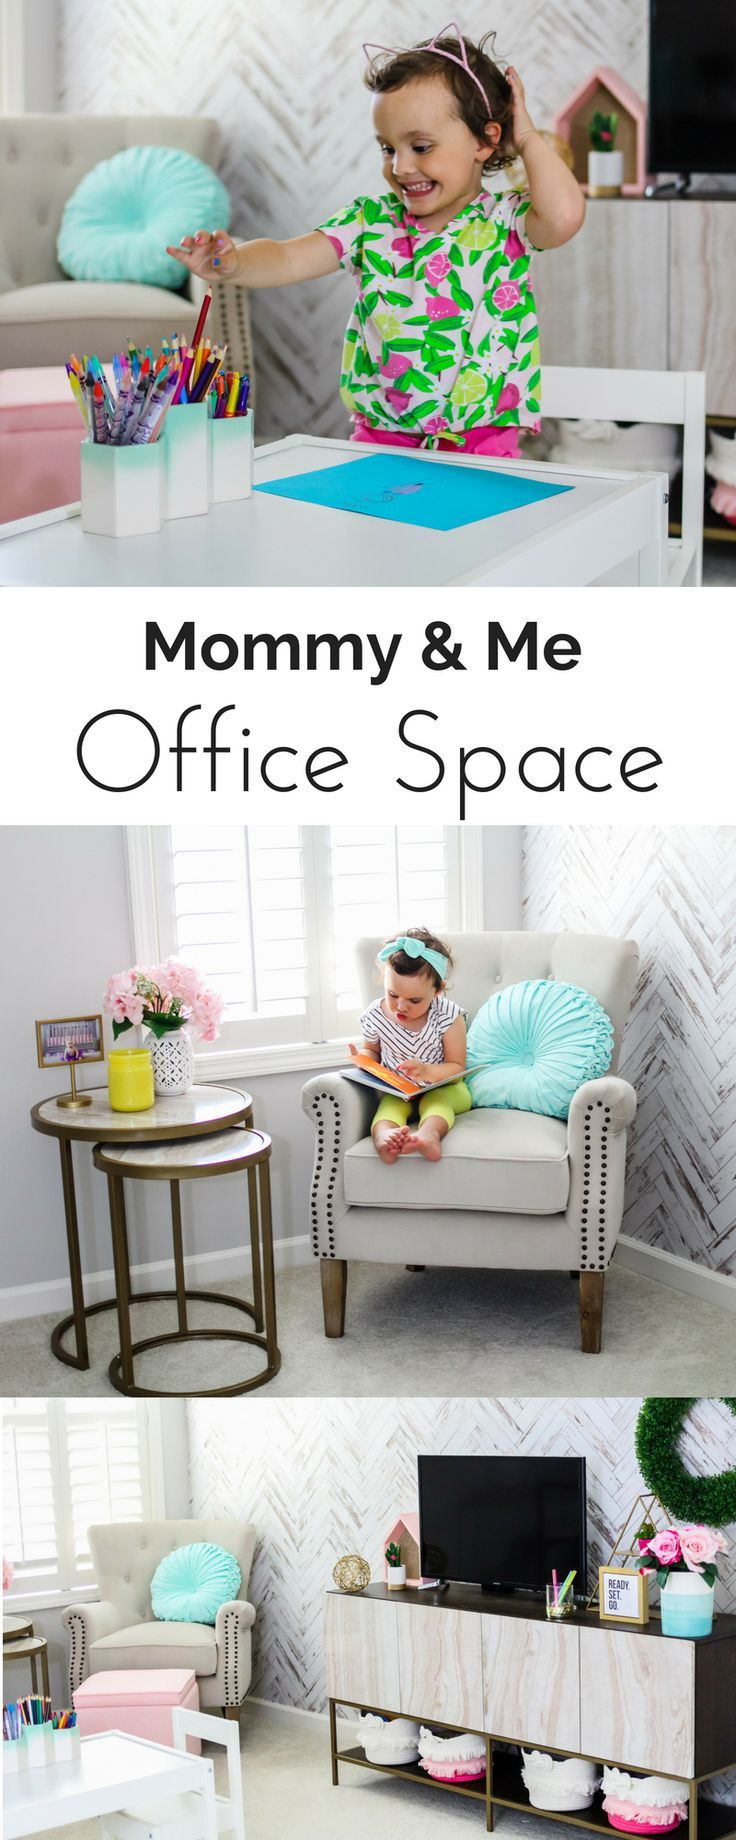 Mommy U0026 Me Office Space | Office Decor | Chevron Walls | Chevron Wallpaper  | Removable Wallpaper | Pink, Mint And Gold Office | #officedecor  #homedecor ...